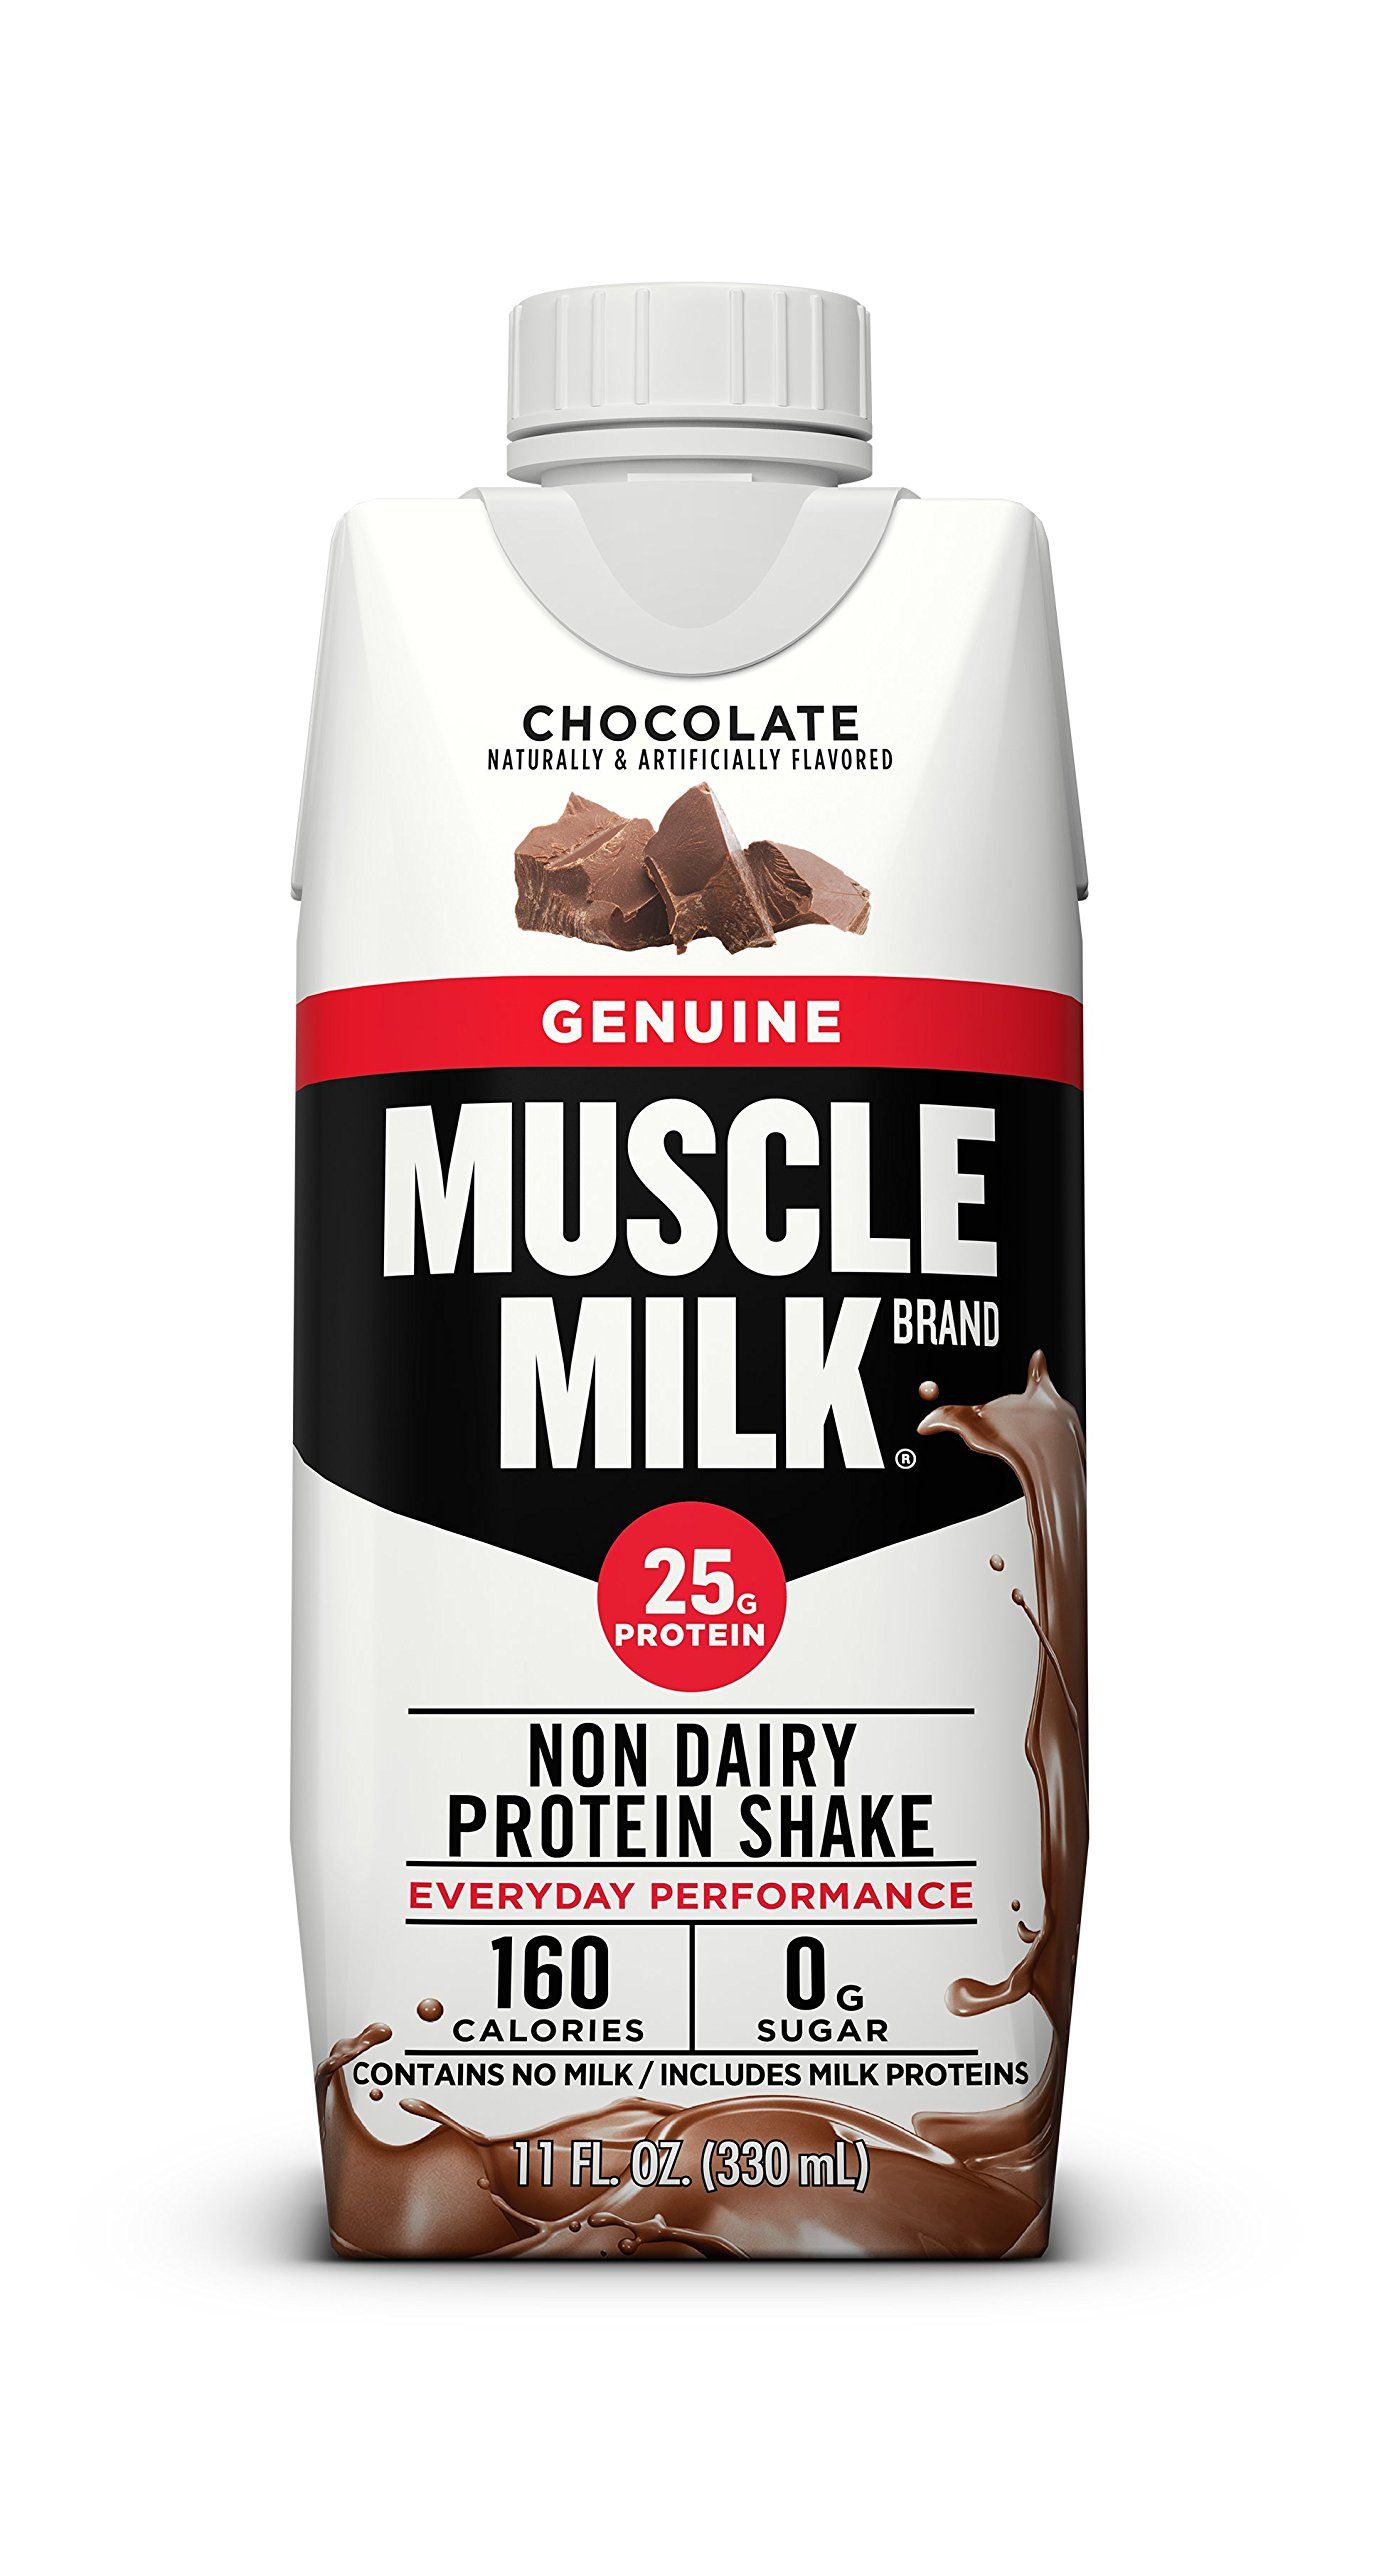 Muscle Milk Genuine Protein Shake, Chocolate, 25g Protein, 11 FL OZ, 12 Count by CytoSport